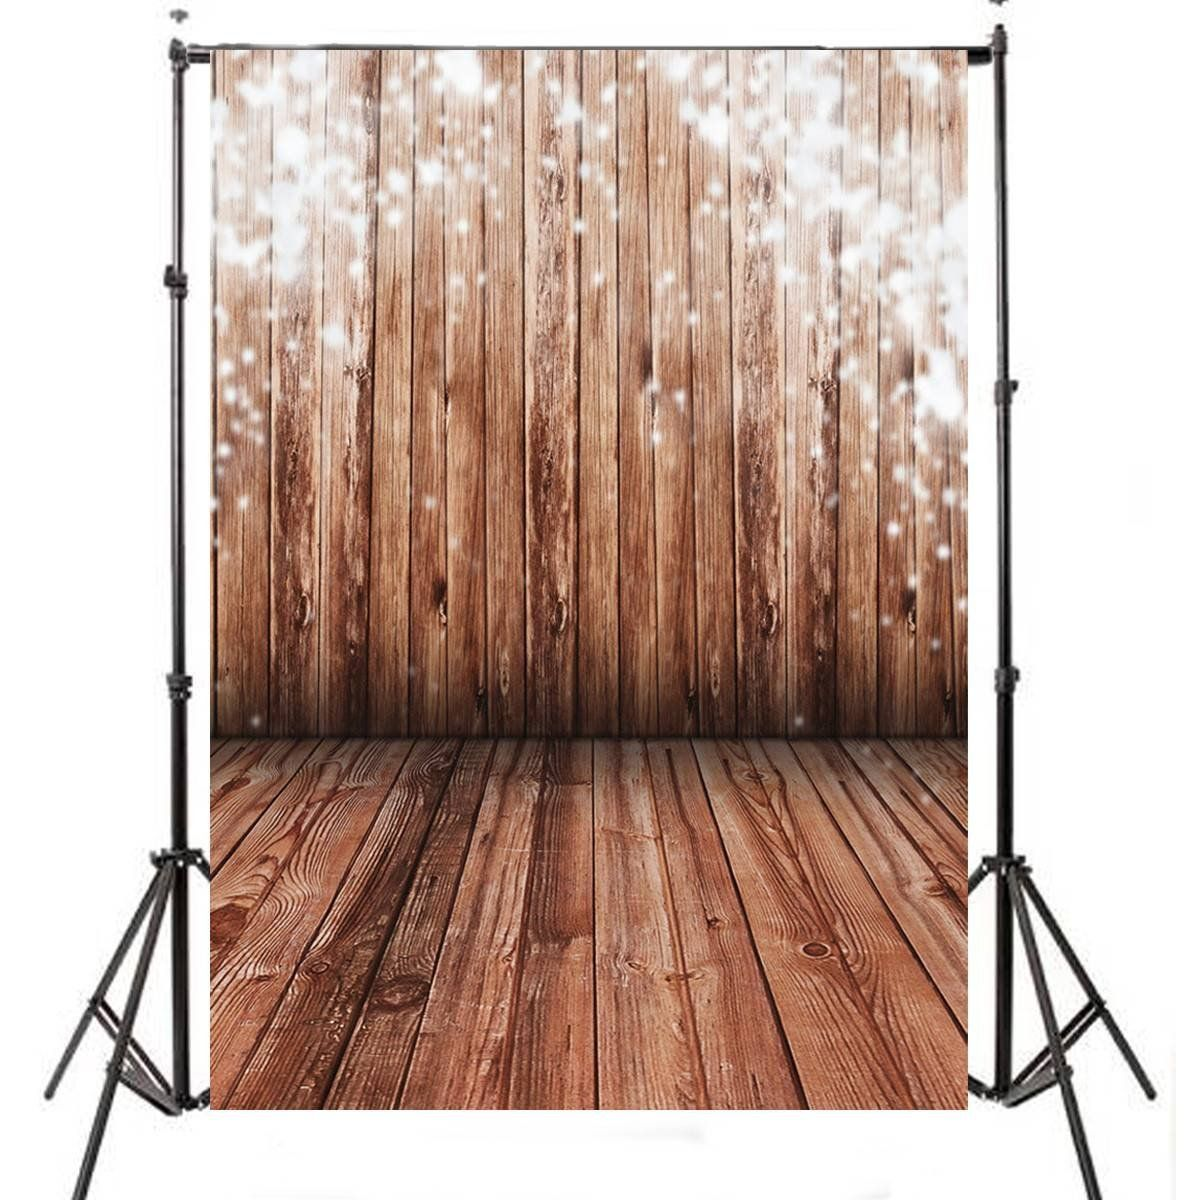 5x7FT Wood Wall Vinyl Photography Backdrop Photo Background Studio Props High Quality New Best Price